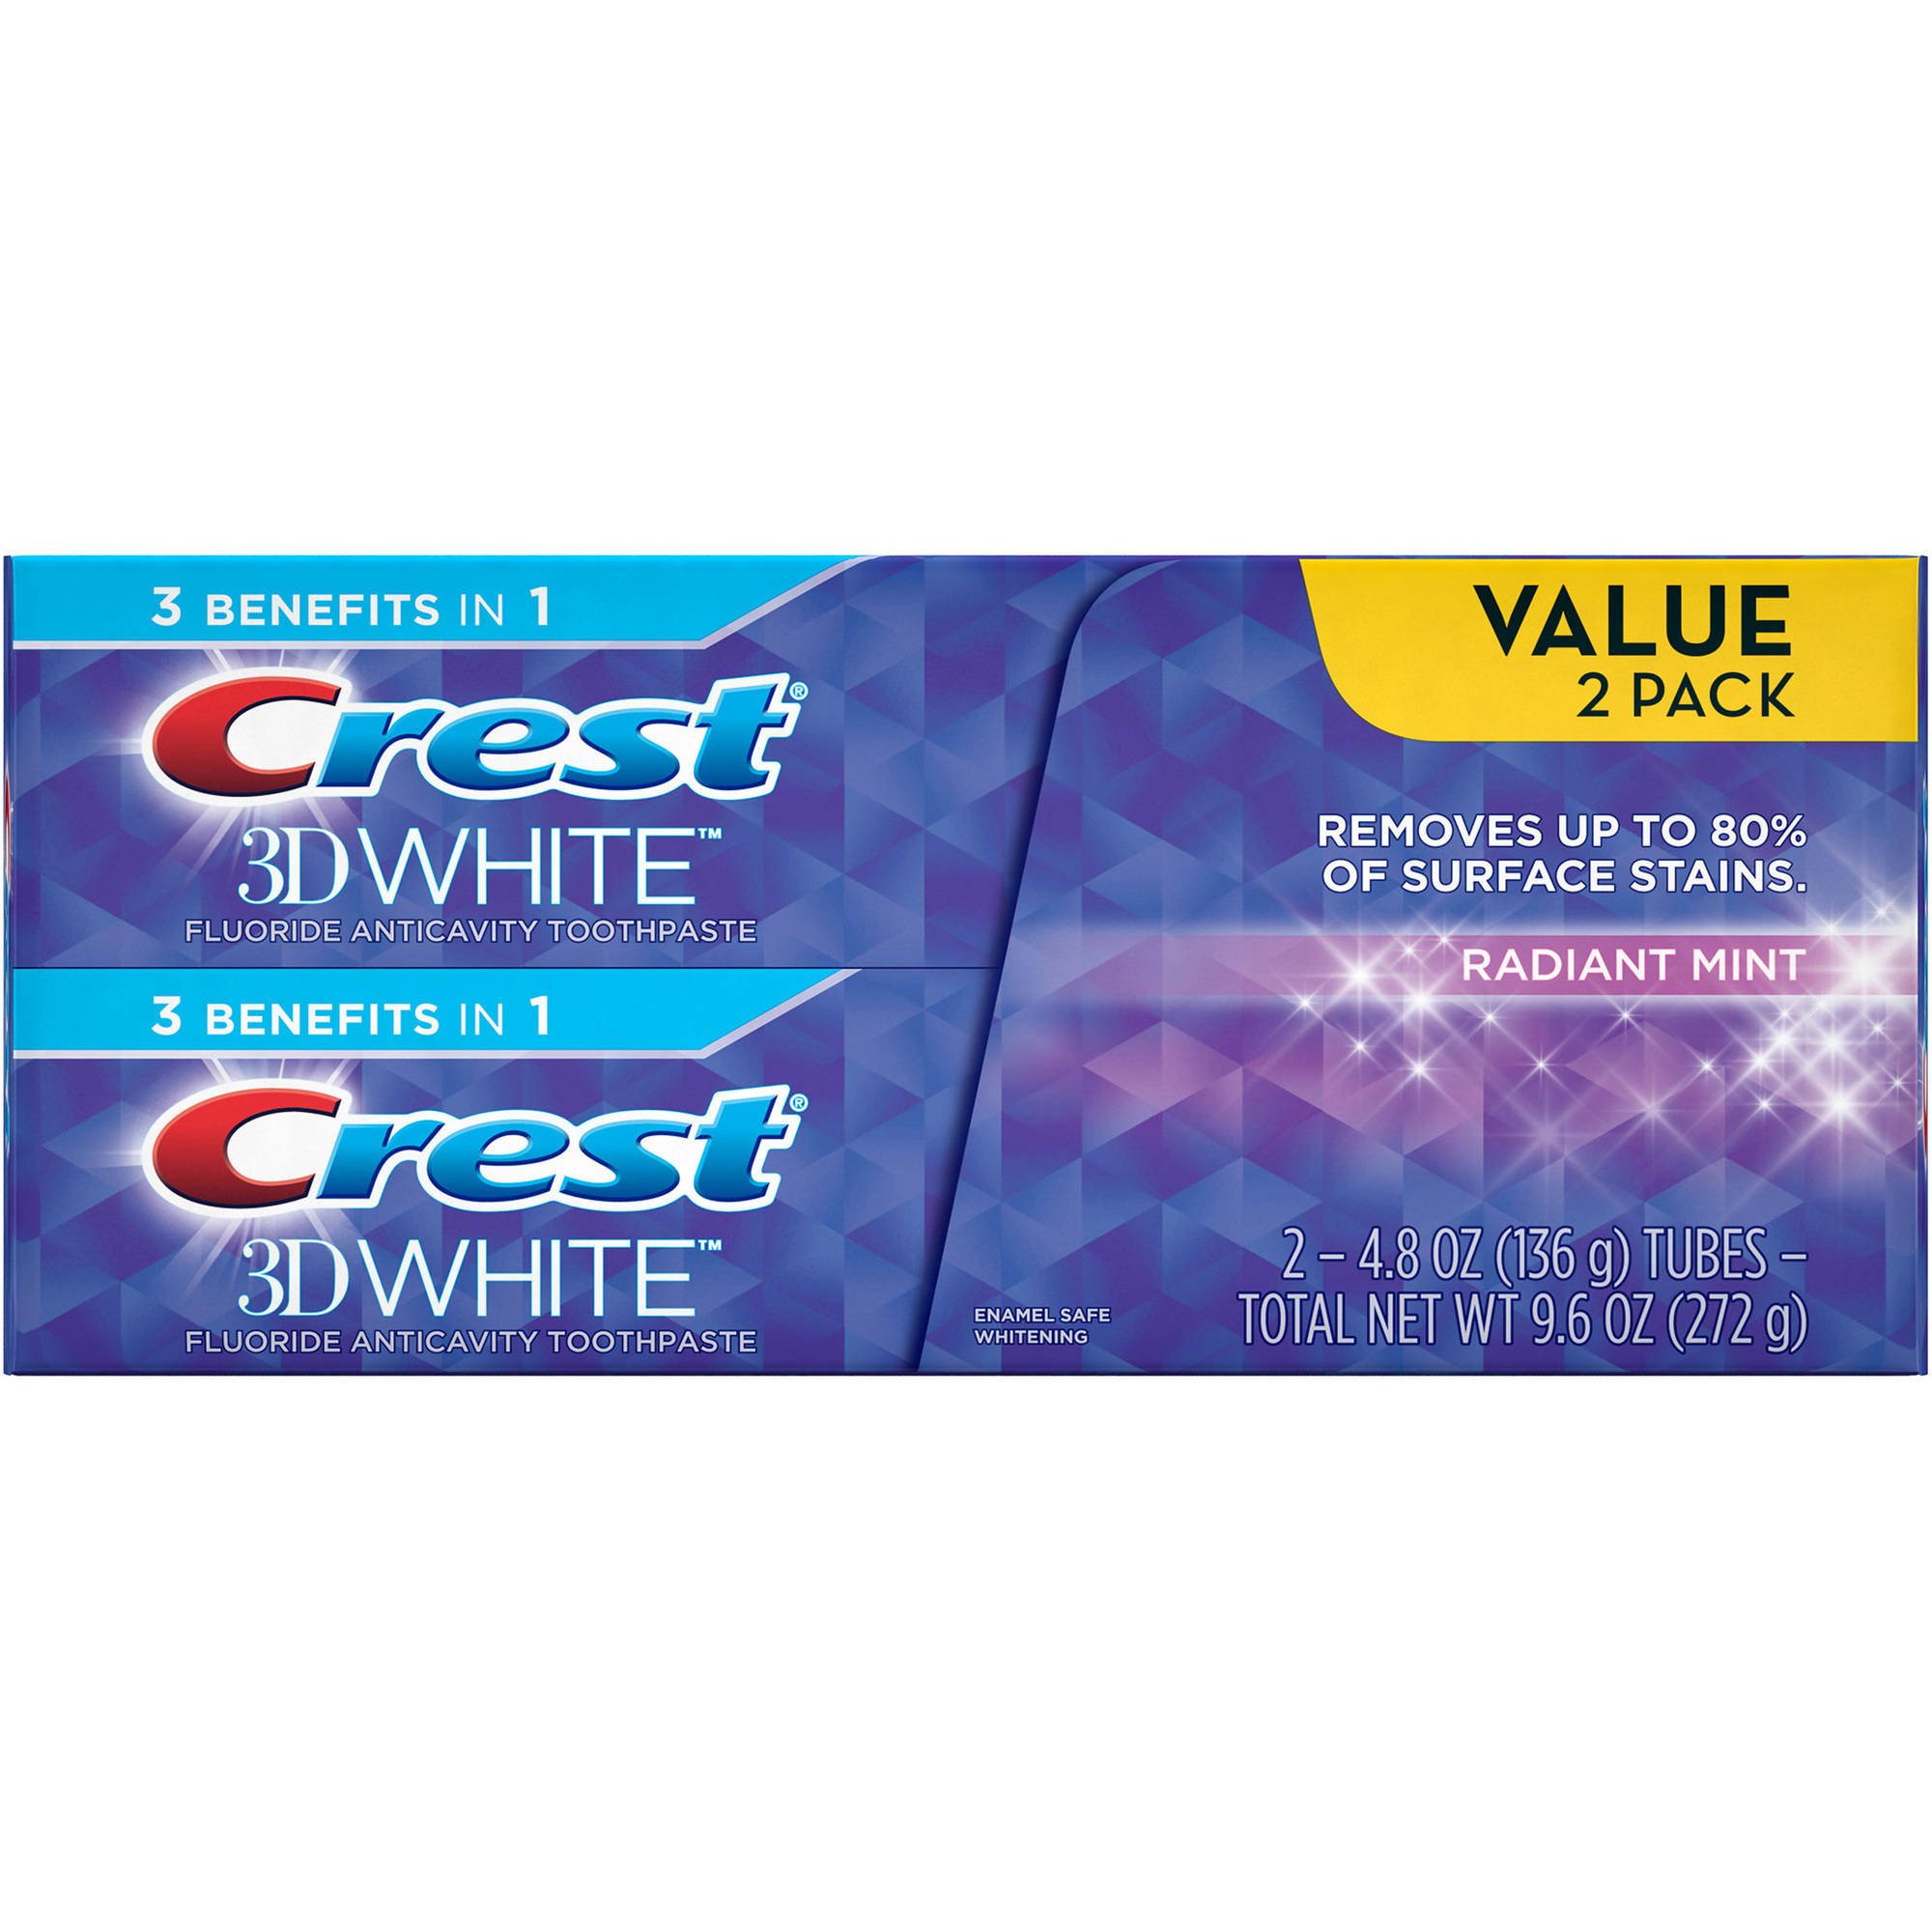 3D White Crest 3D White Radiant Mint Whitening Toothpaste, 4.8 oz, 2 count